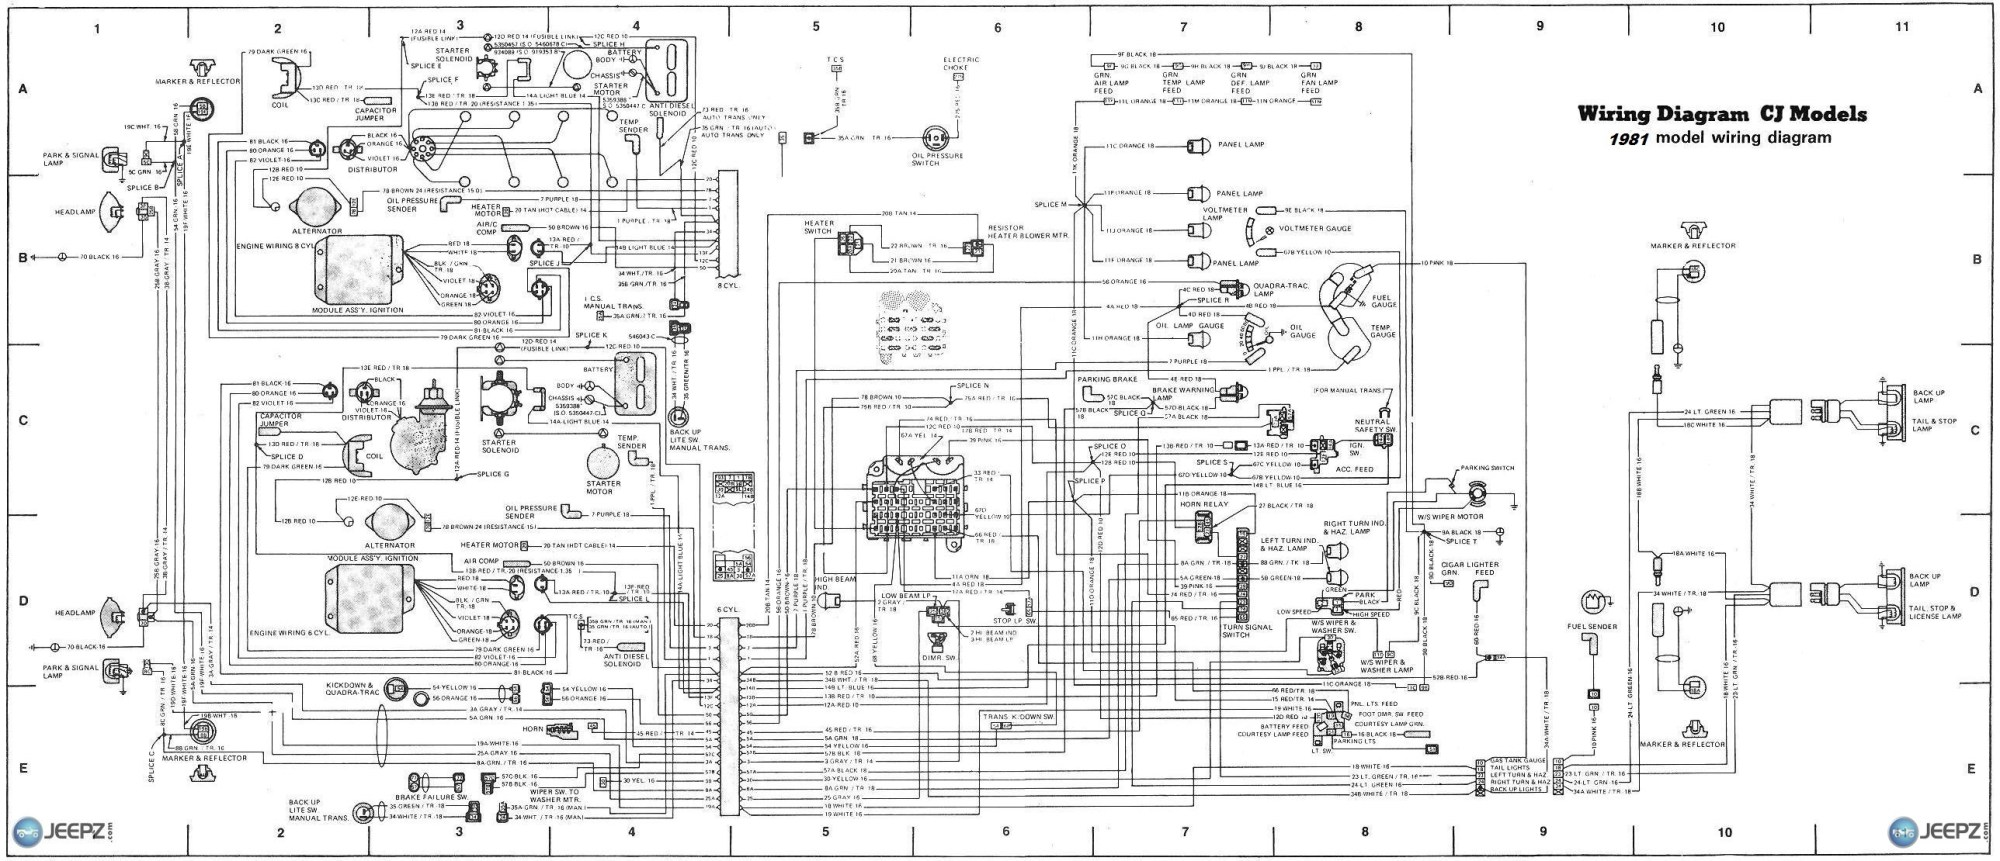 hight resolution of cj 7 wire diagram opel corsa c radio wiring diagram opel corsa circuit diagram